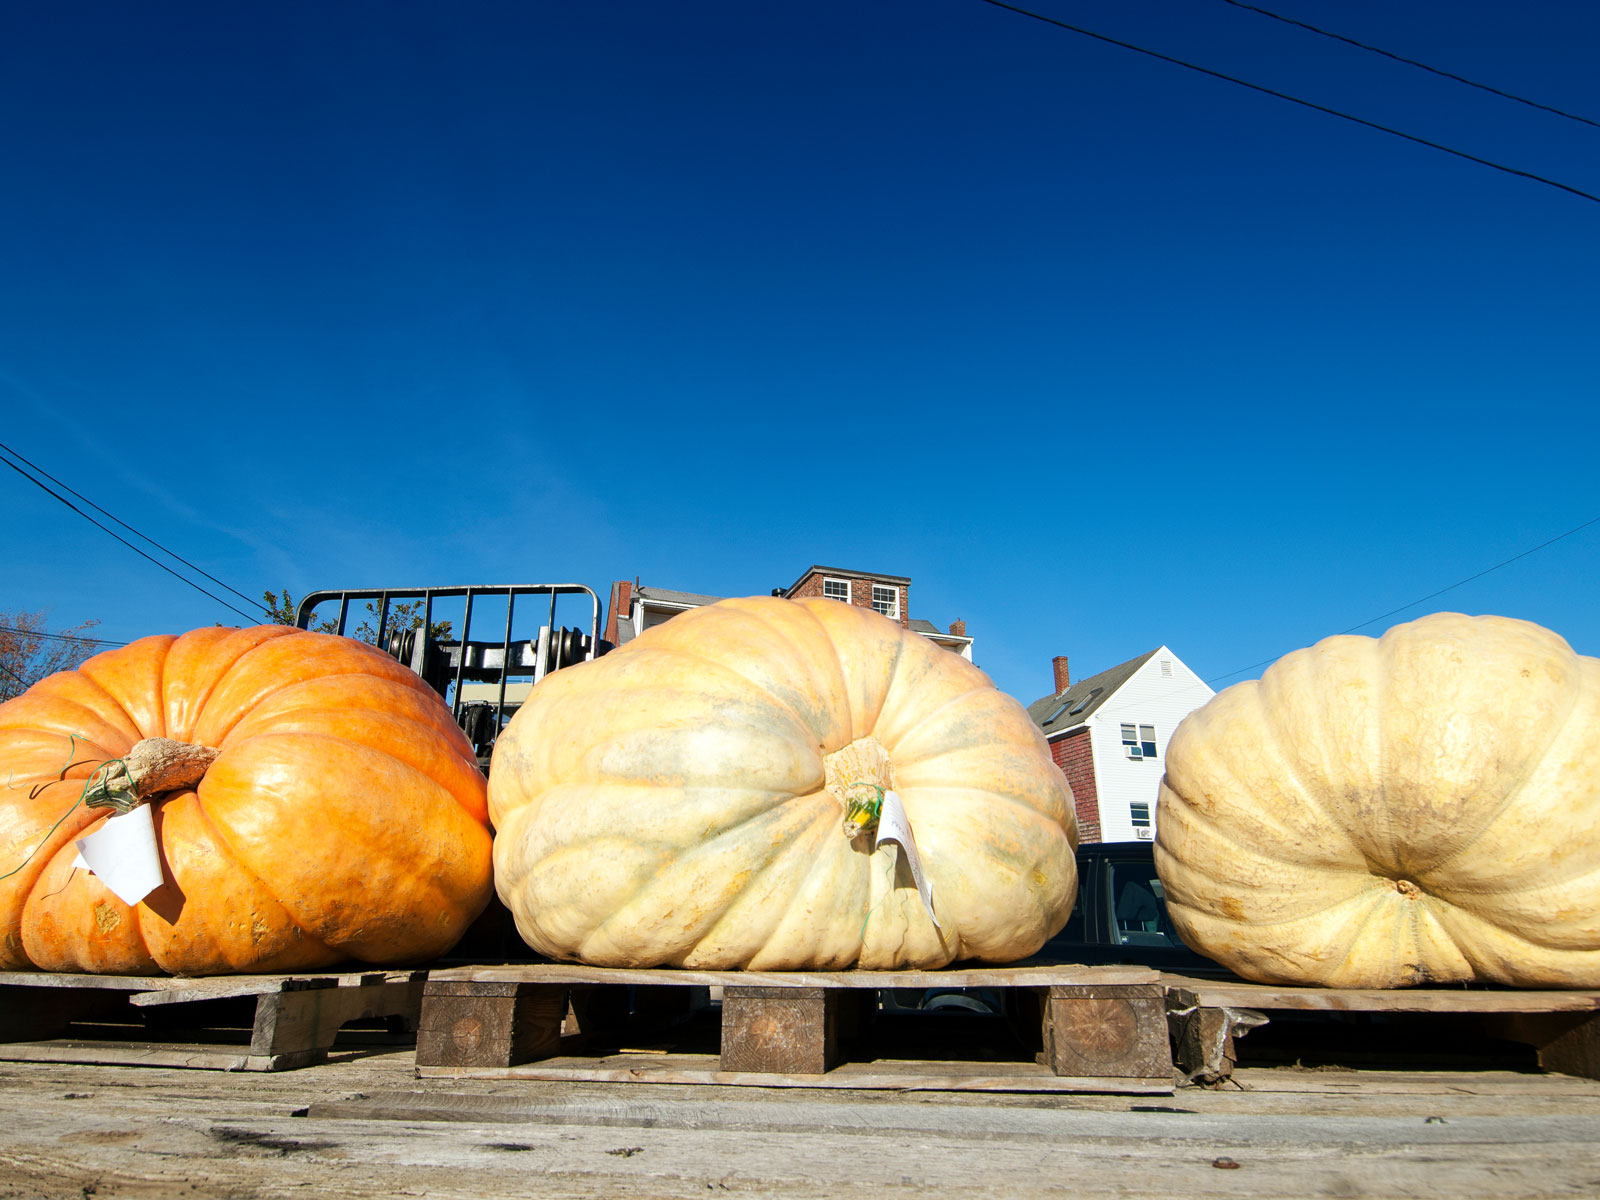 heaviest-pumpkin-north-america-FT-BLOG1018.jpg